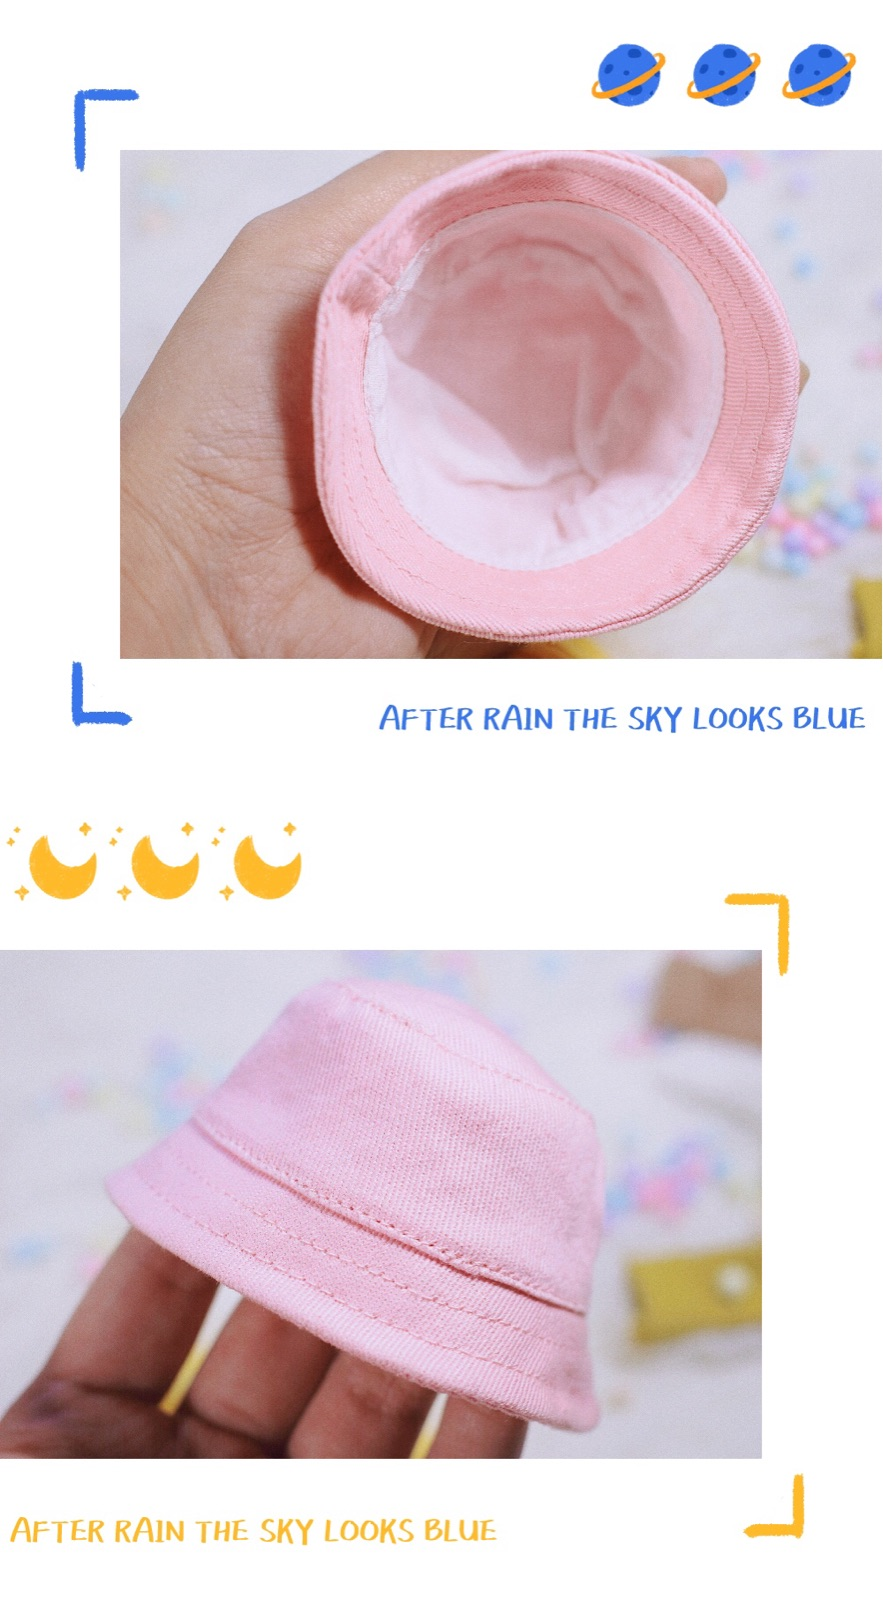 11.11 new product 68 package post spot BJD doll 6 points baby clothes accessories props fisherman hat hat versatile daily